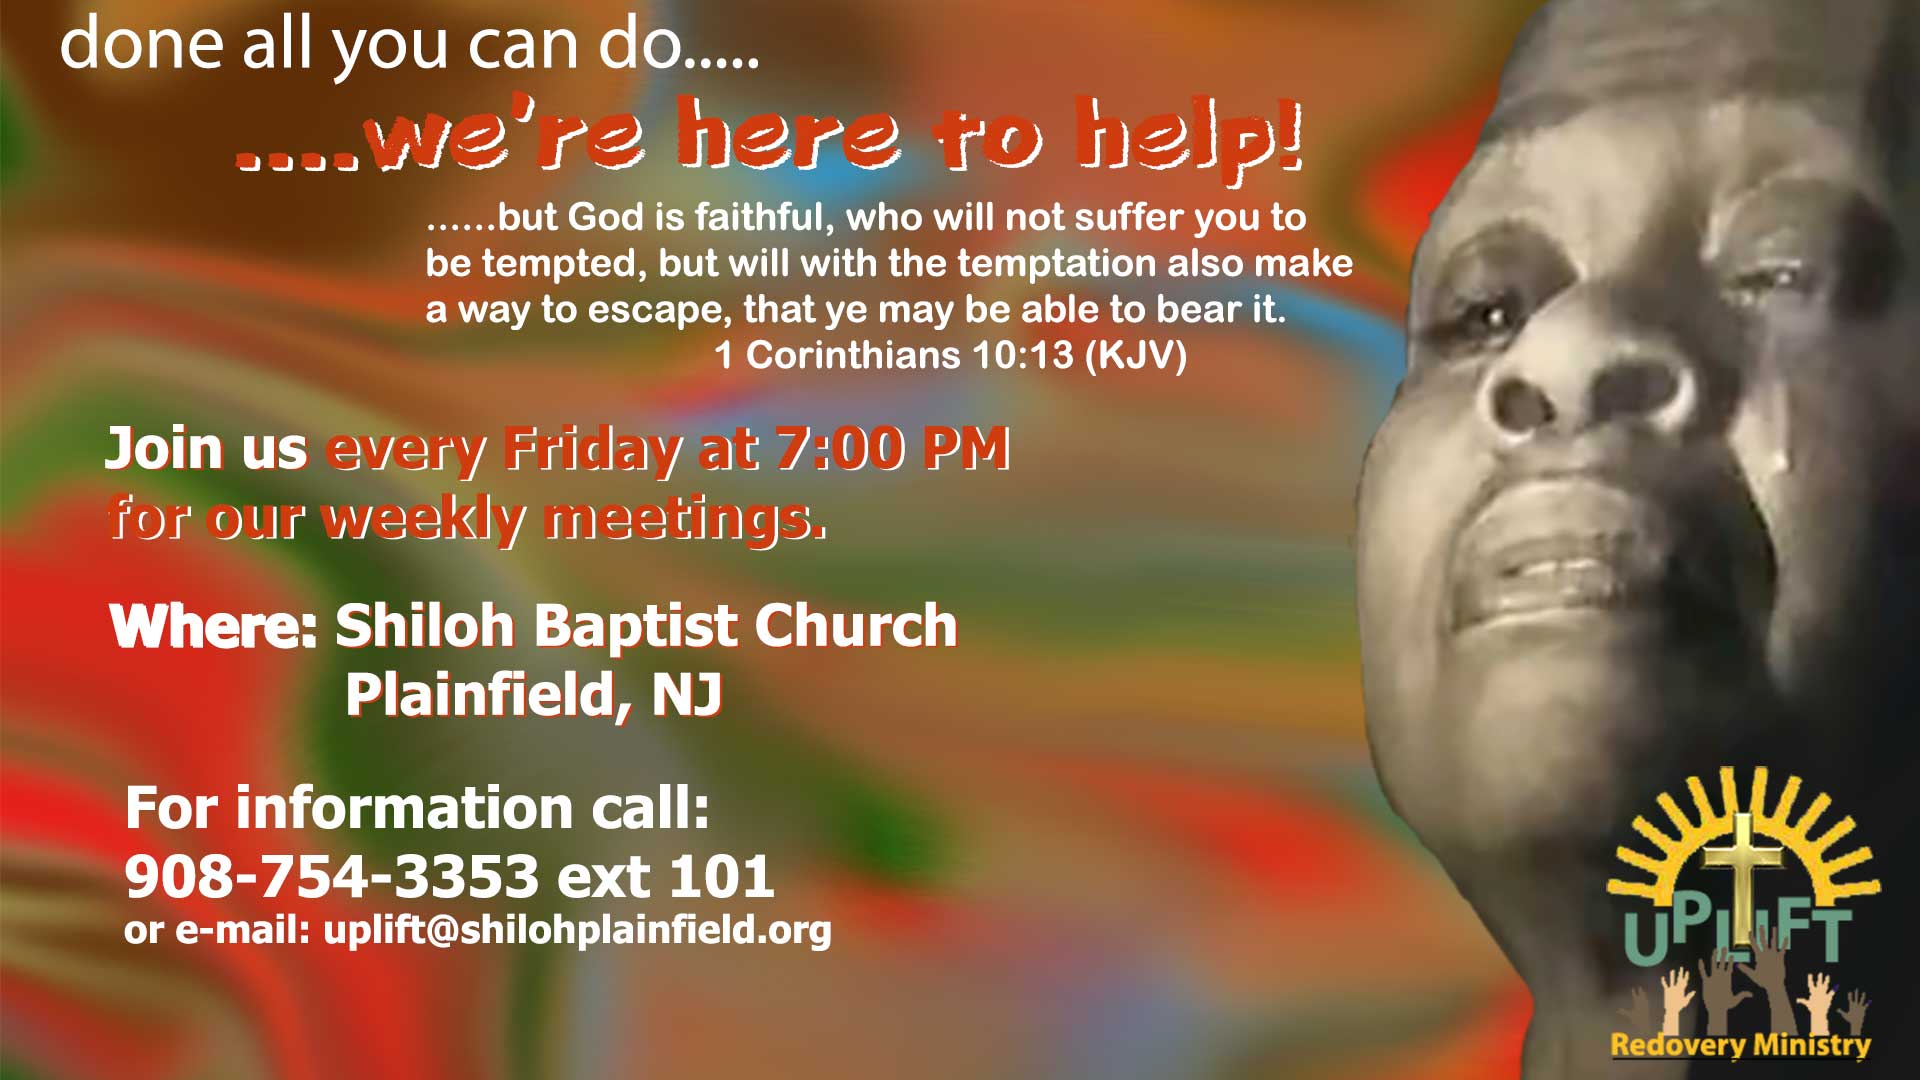 Uplift Recovery Ministry